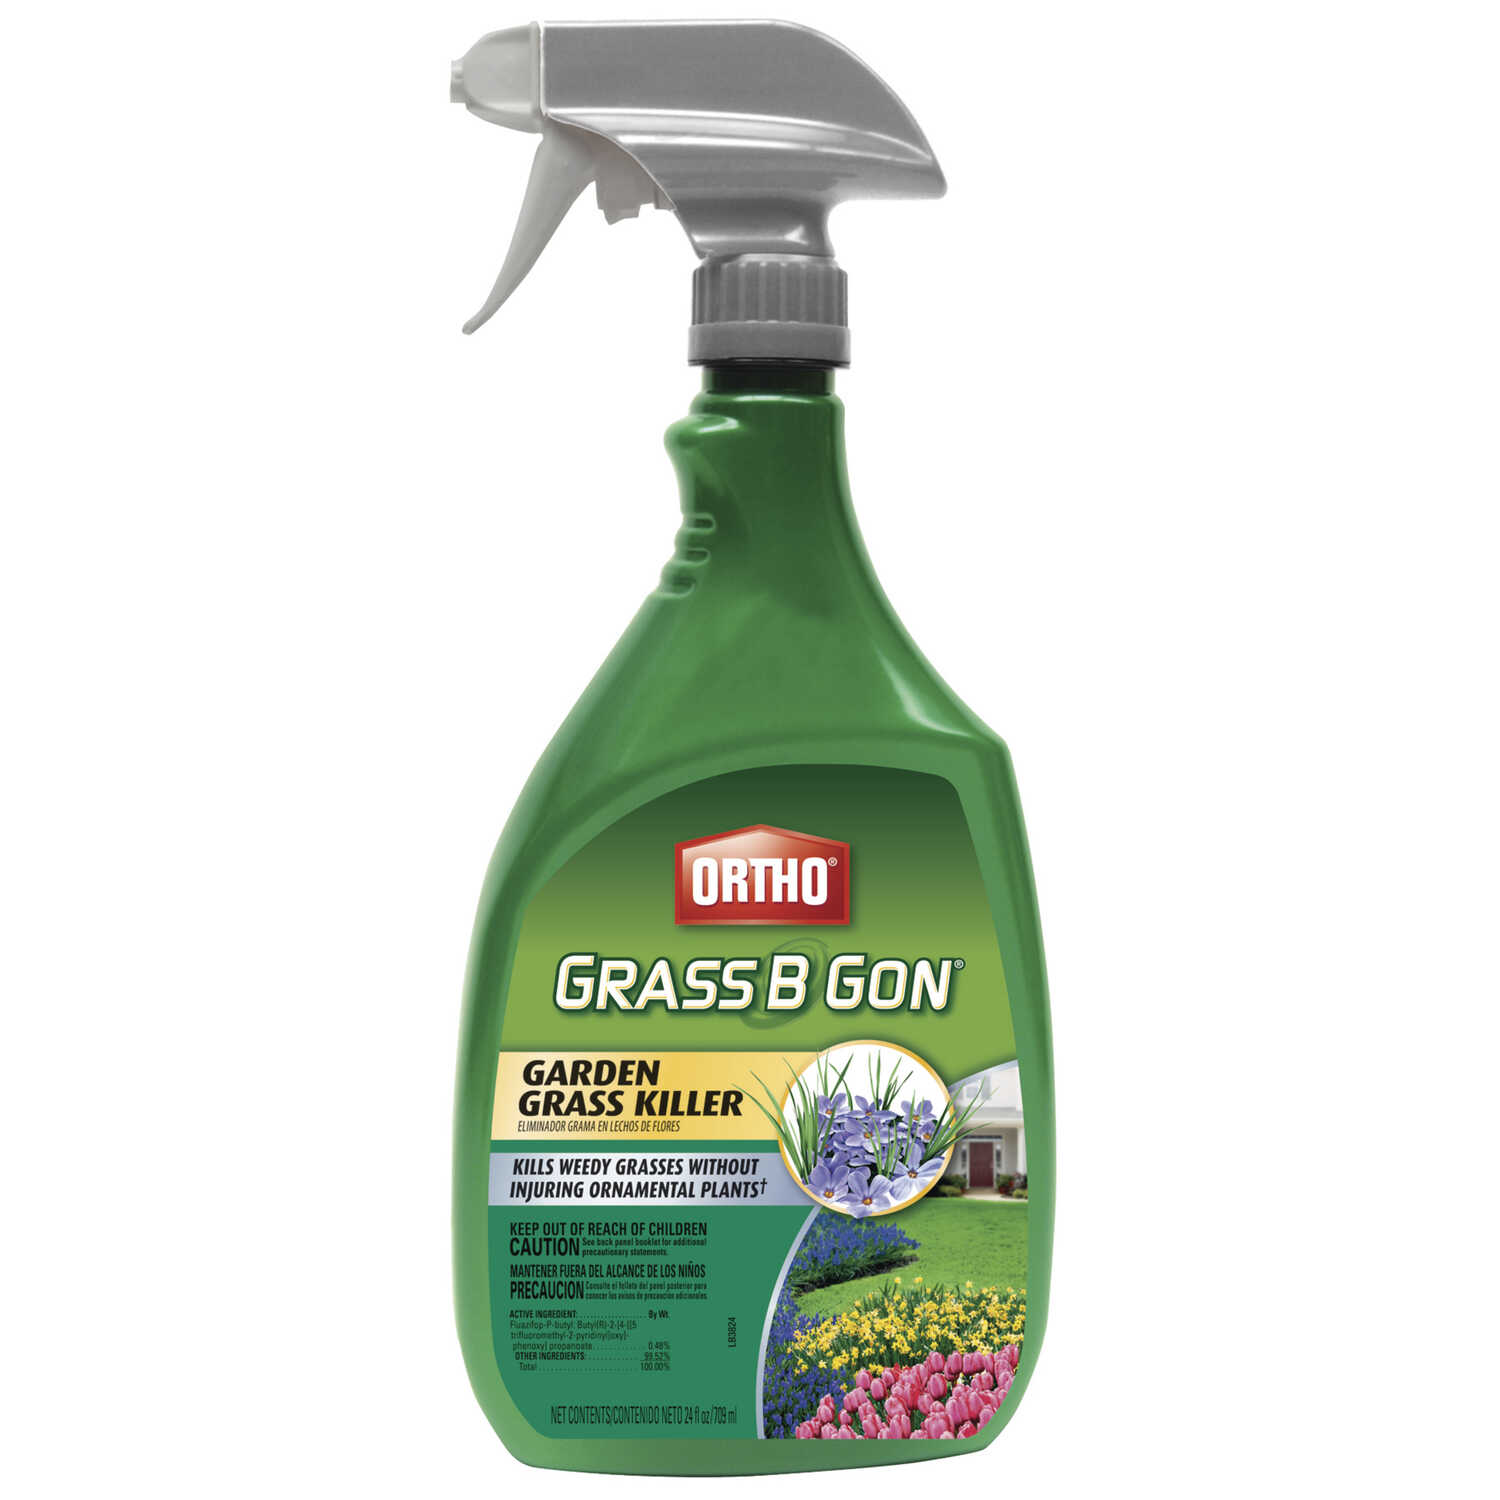 Ortho  GRASS-B-GON  RTU Liquid  Grass Killer  24 oz.